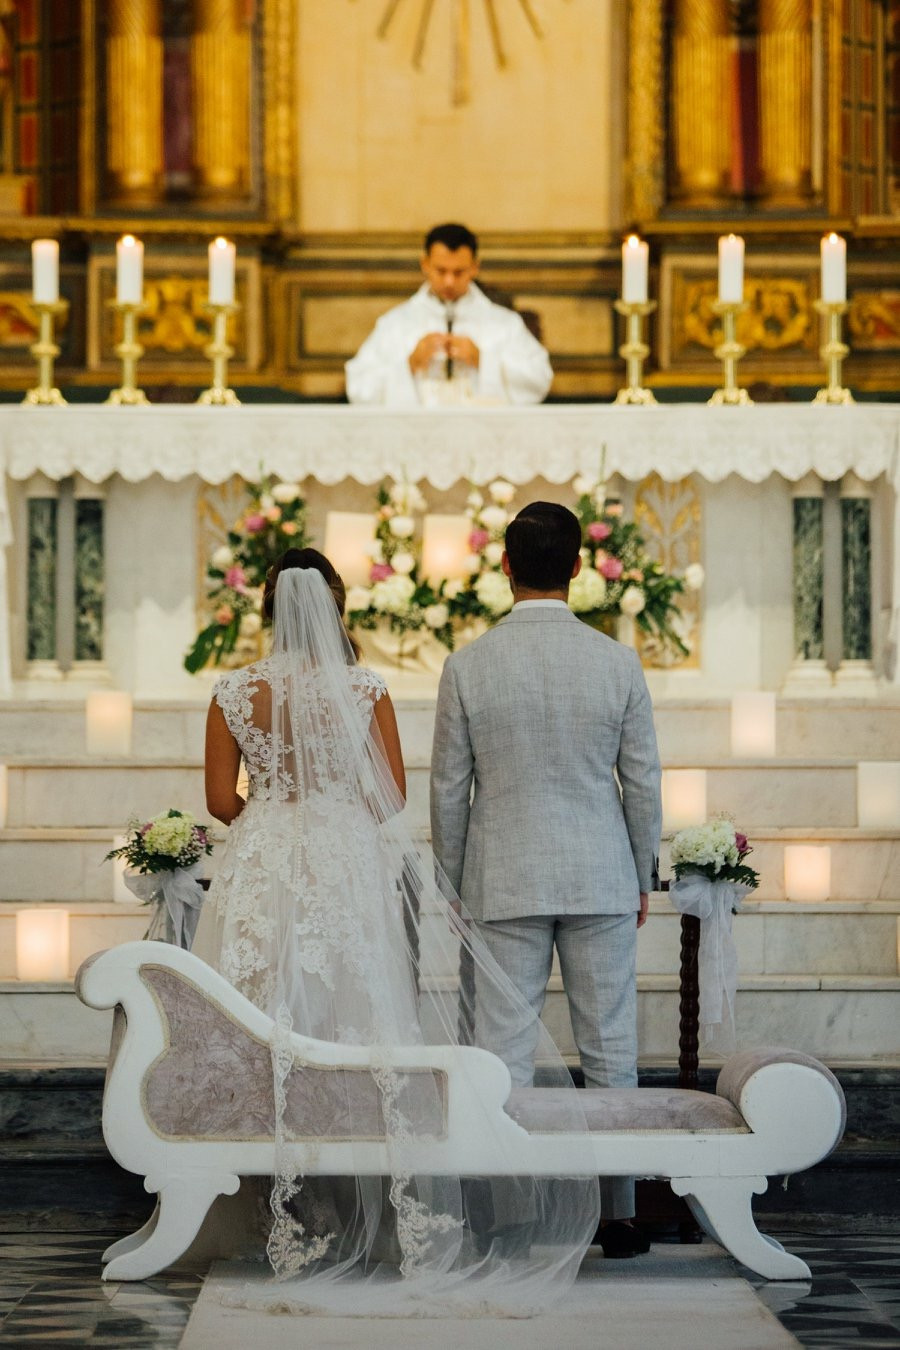 Ceremony was held in a church built in the 1500's.